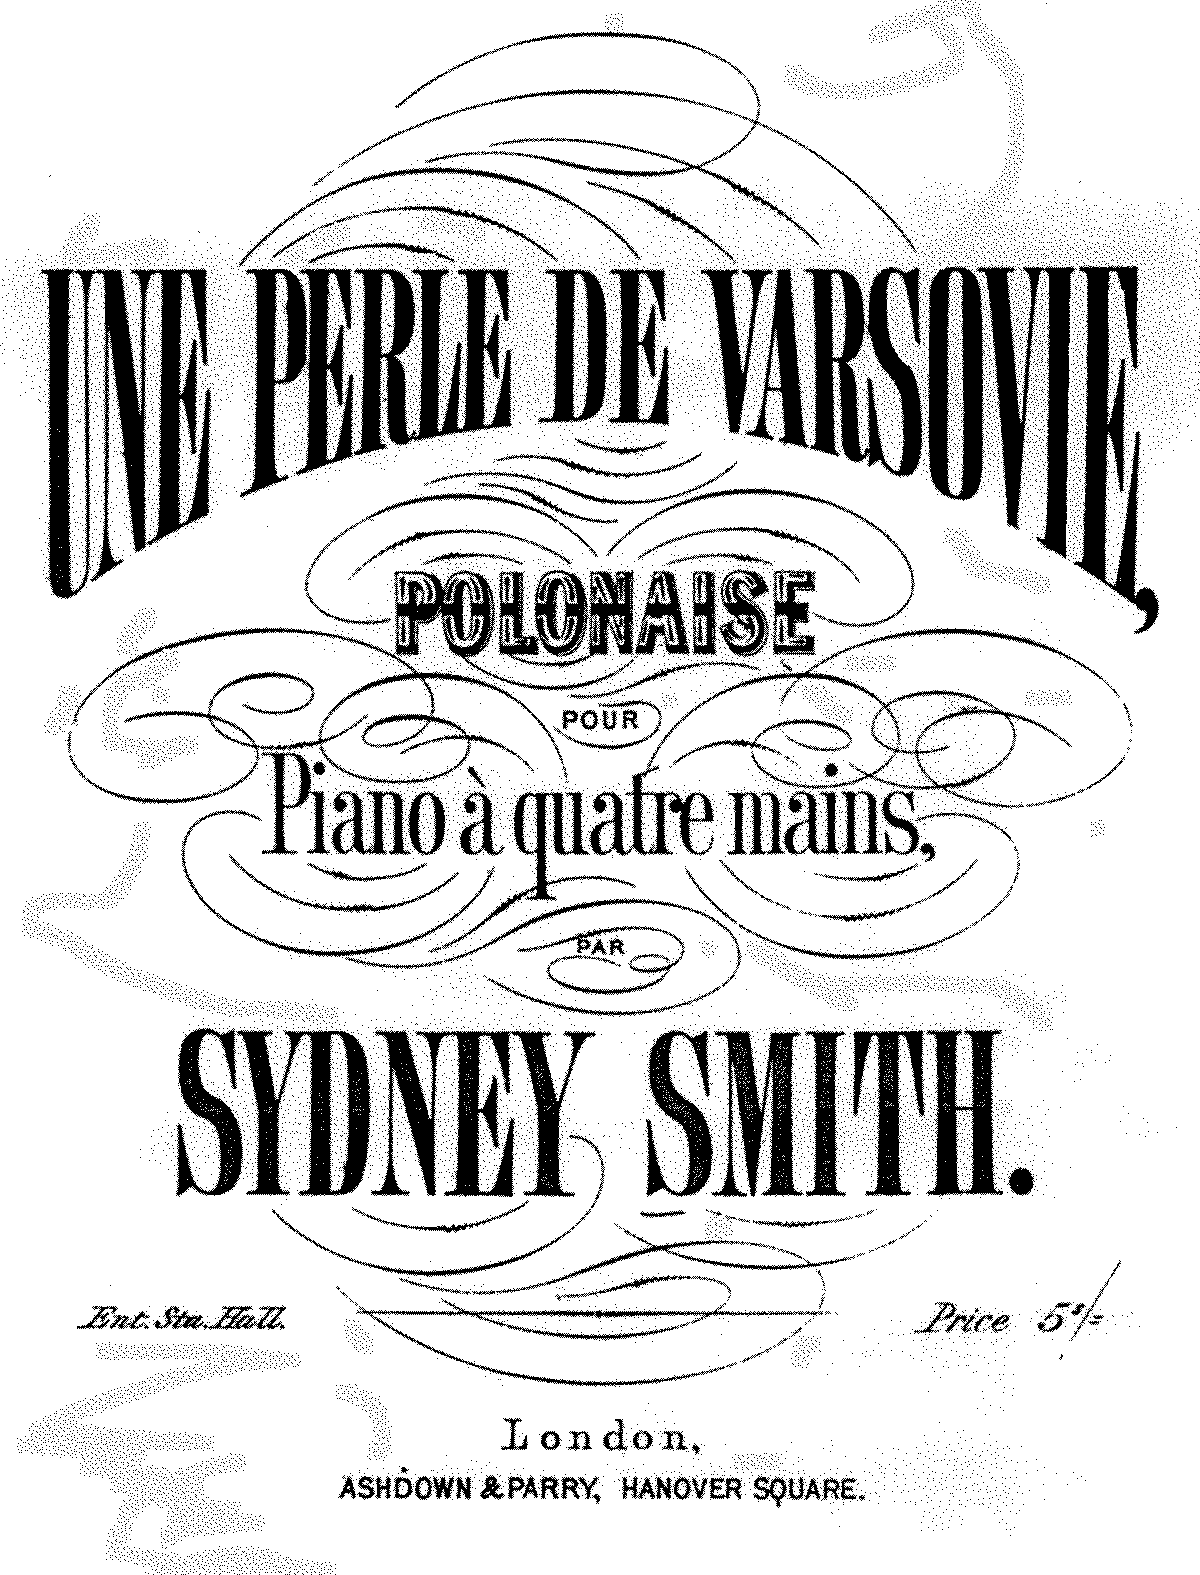 PMLP202701-smith op027 perle de varsovie 4h.pdf